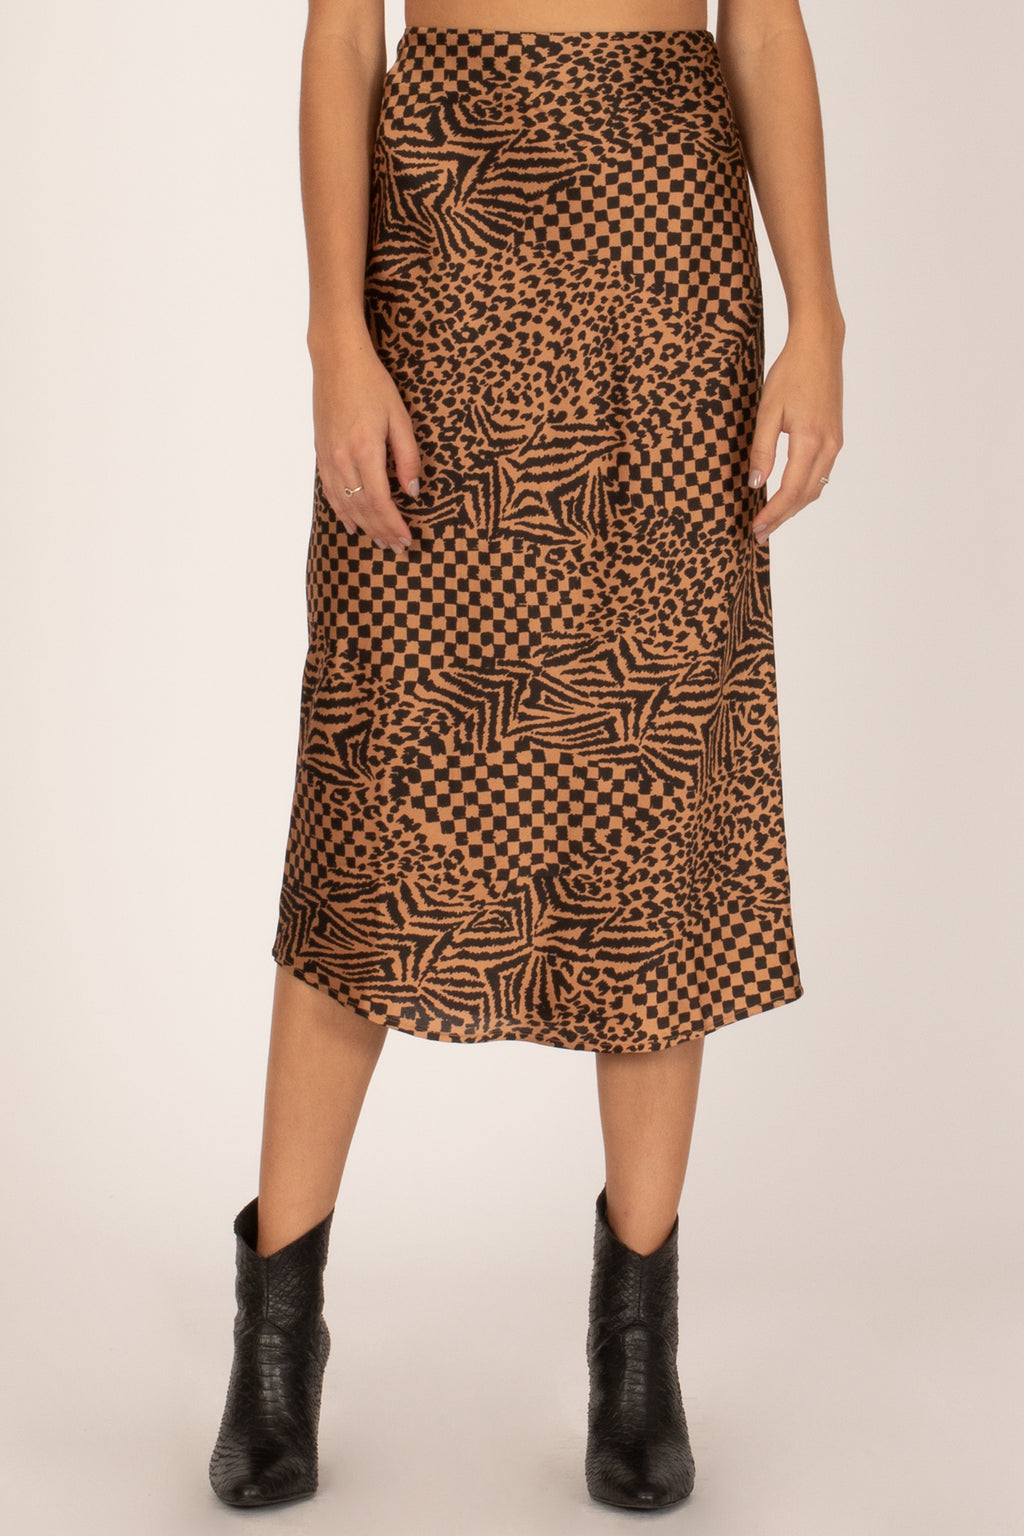 Amuse Society - Encore Skirt